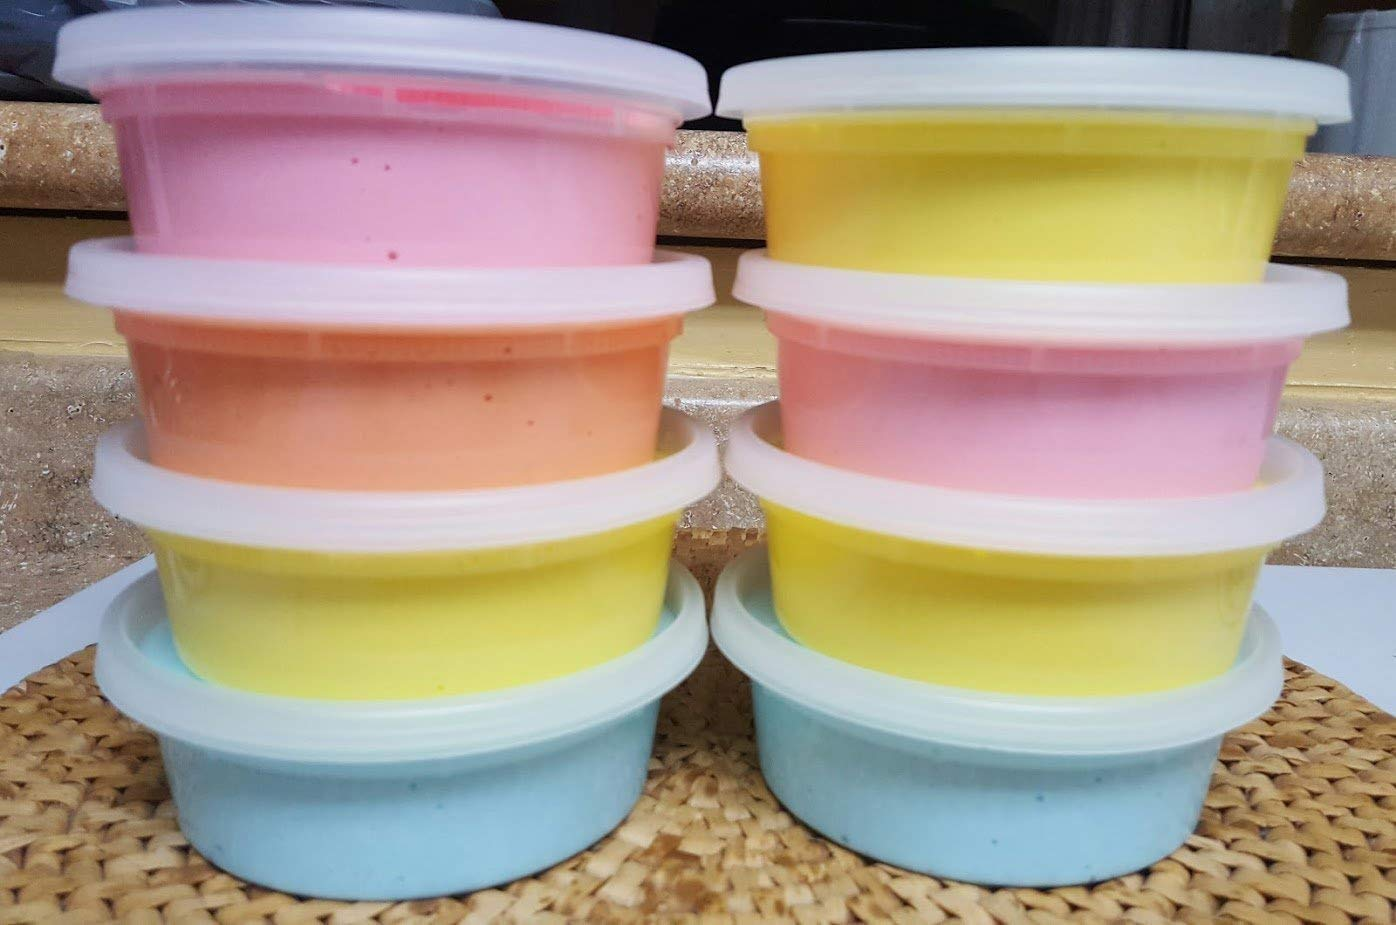 or cloud creme scented clicky butter floam One Mystery Slime BIG 8oz Container stretchy pink or ? Random blue MYSTERY 8oz Homemade SLIME Surprise fluffy